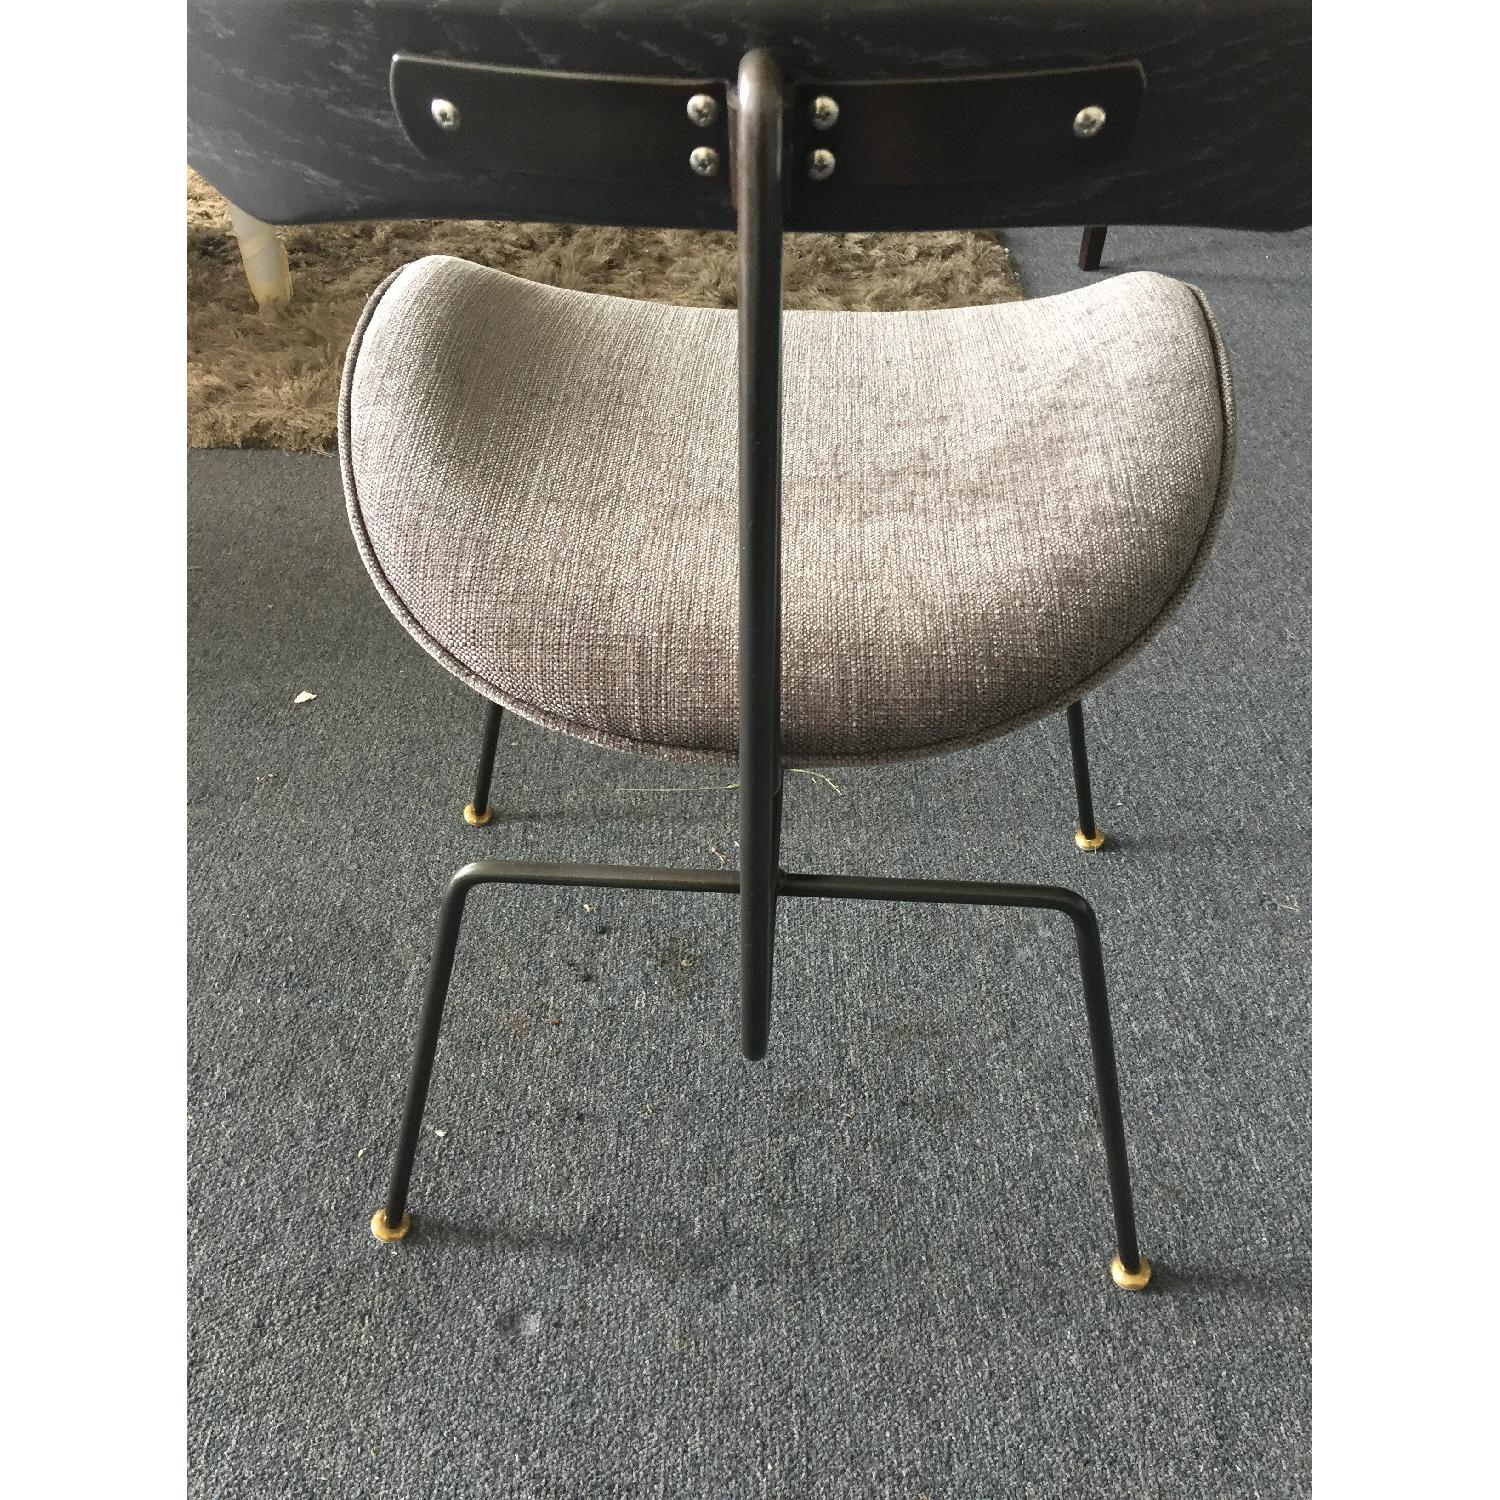 Lazzoni Grey Dining/Outdoor Chairs - image-8